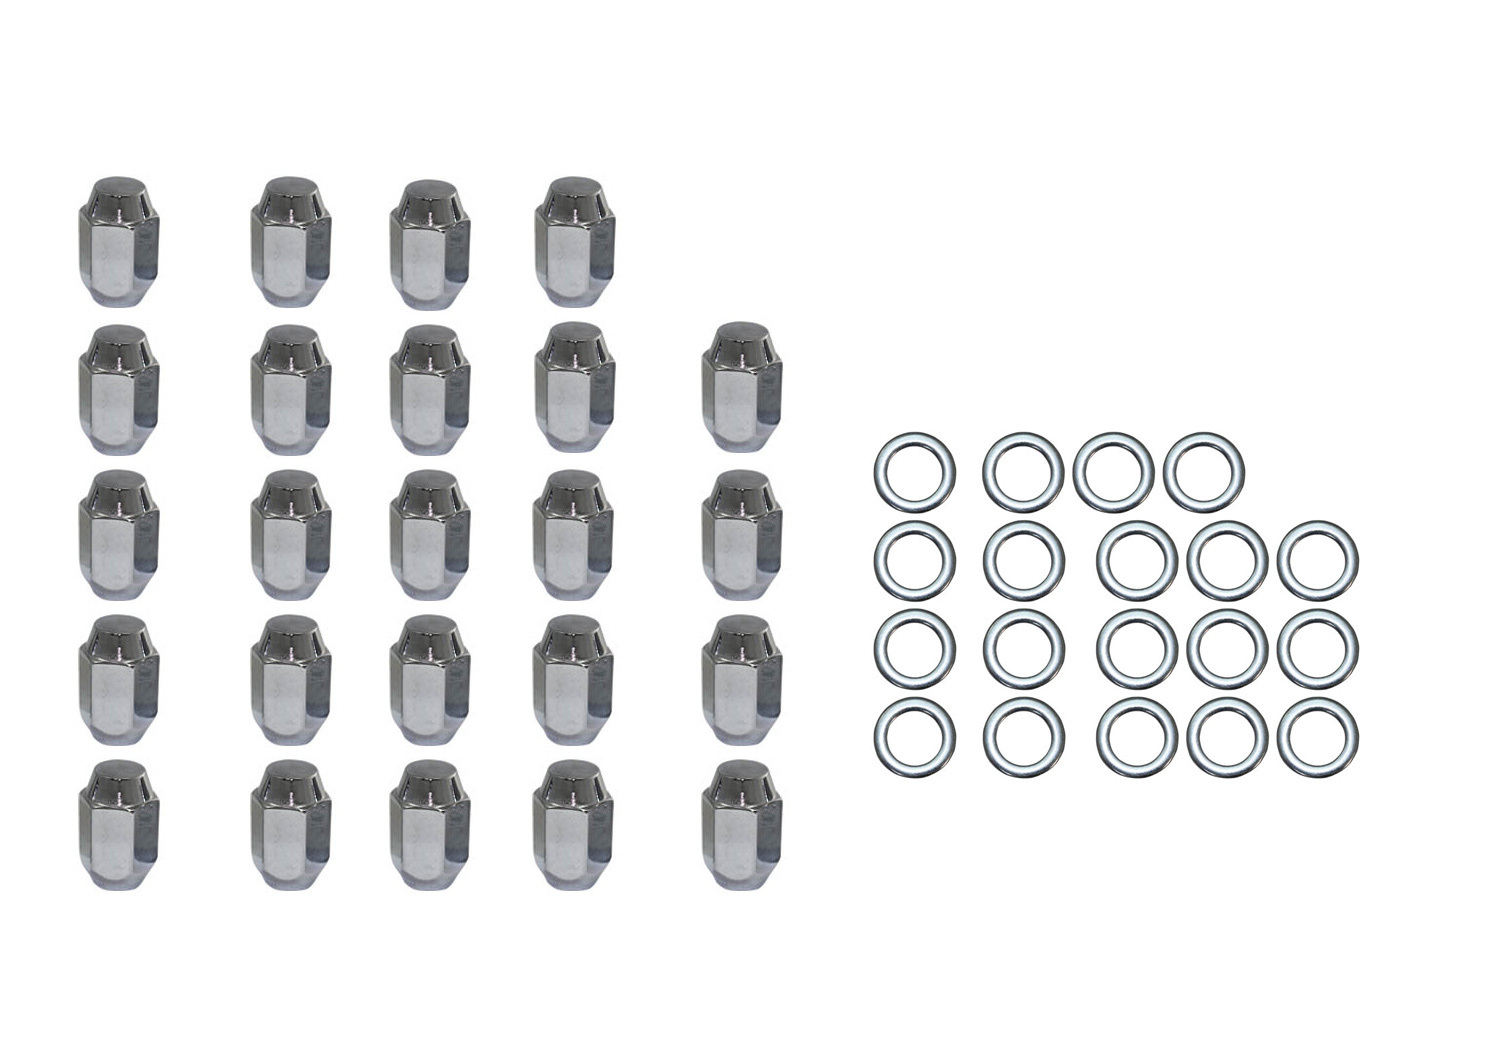 S240229 further How To Replace Heater Air Conditioner Blend Door Actuator On Buick 2001 Lesabre moreover 24 Pc Set Chrome Steel Acorn Chank Lug Nuts 7 16 X 20 Righ Hand Thread Chevy Gm Hr0165 as well 1974 Bronco Steering Column Schematic together with 2l4yw Trying Locate Fuel Pump Relay 92 Buick Centuet. on 1982 buick regal